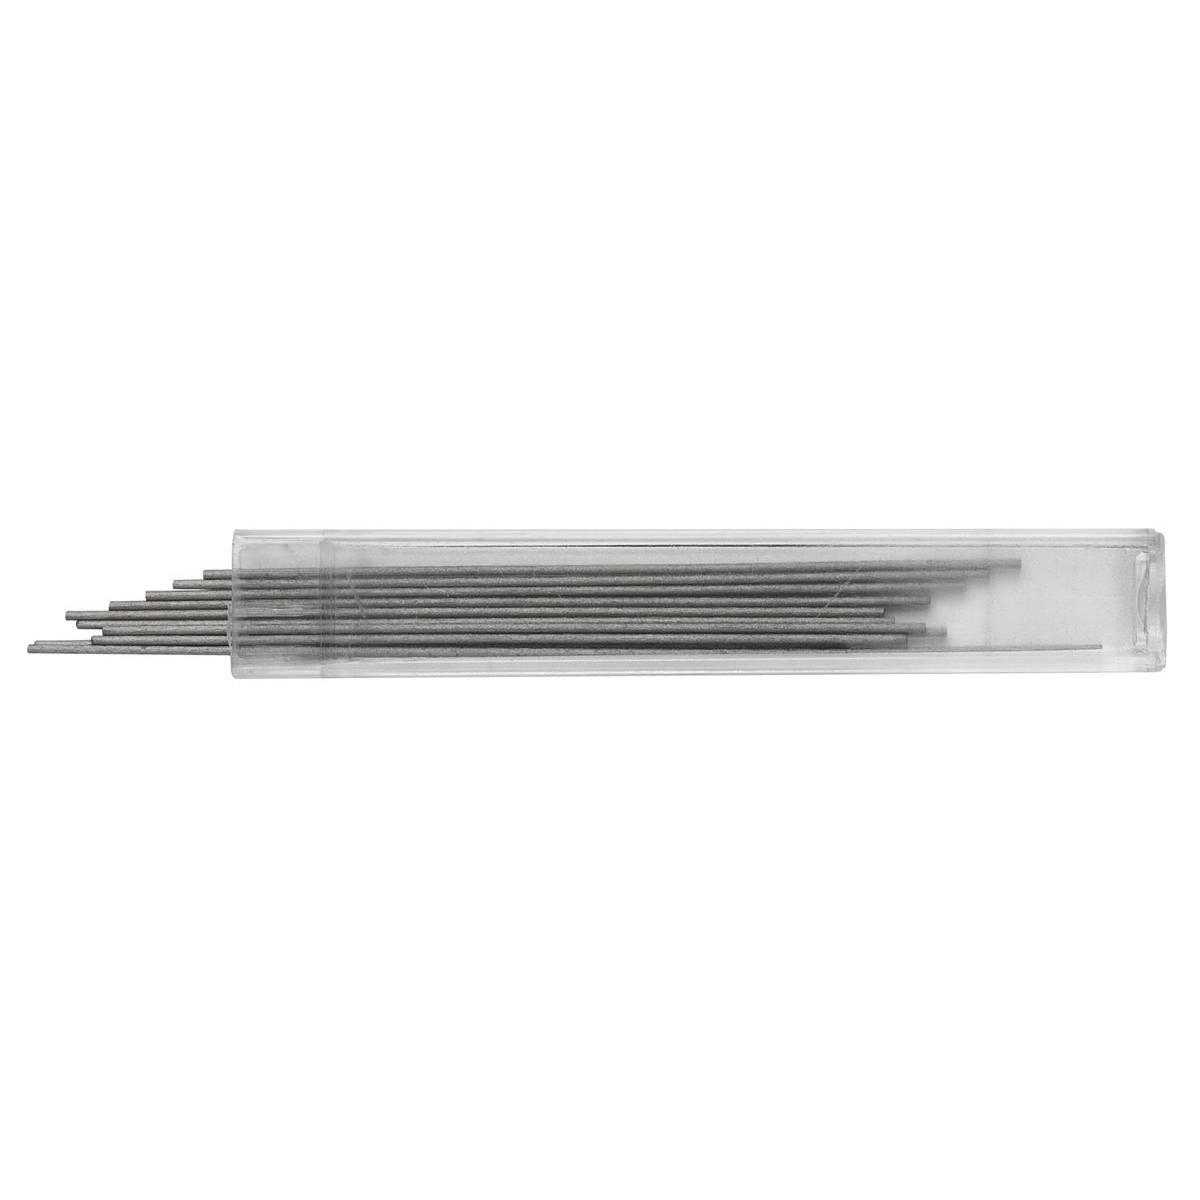 5 Star Pencil Leads 0.7mm HB Plain